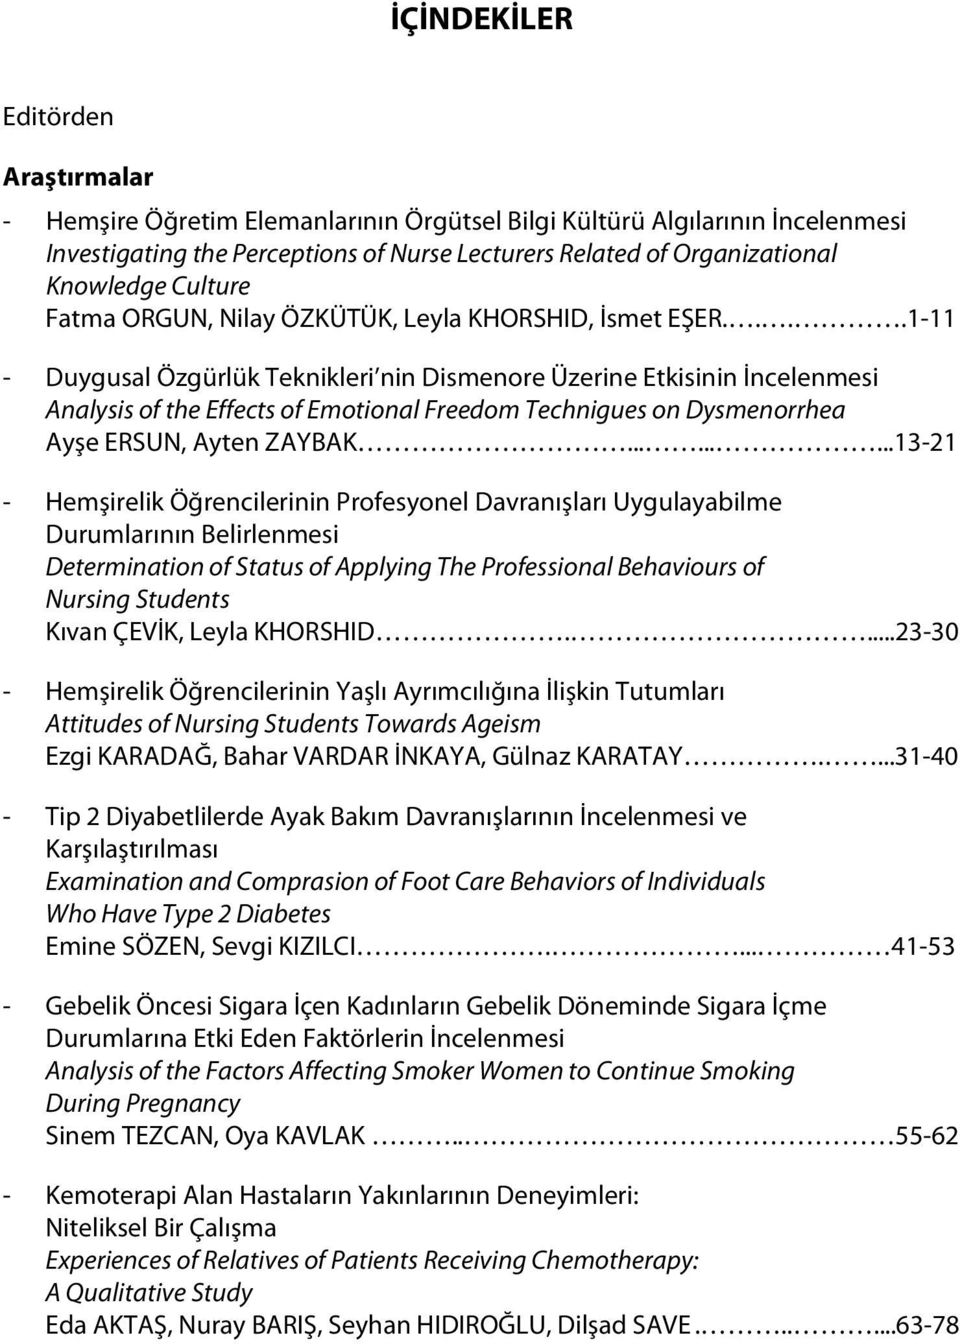 ...1-11 - Duygusal Özgürlük Teknikleri nin Dismenore Üzerine Etkisinin İncelenmesi Analysis of the Effects of Emotional Freedom Technigues on Dysmenorrhea Ayşe ERSUN, Ayten ZAYBAK.